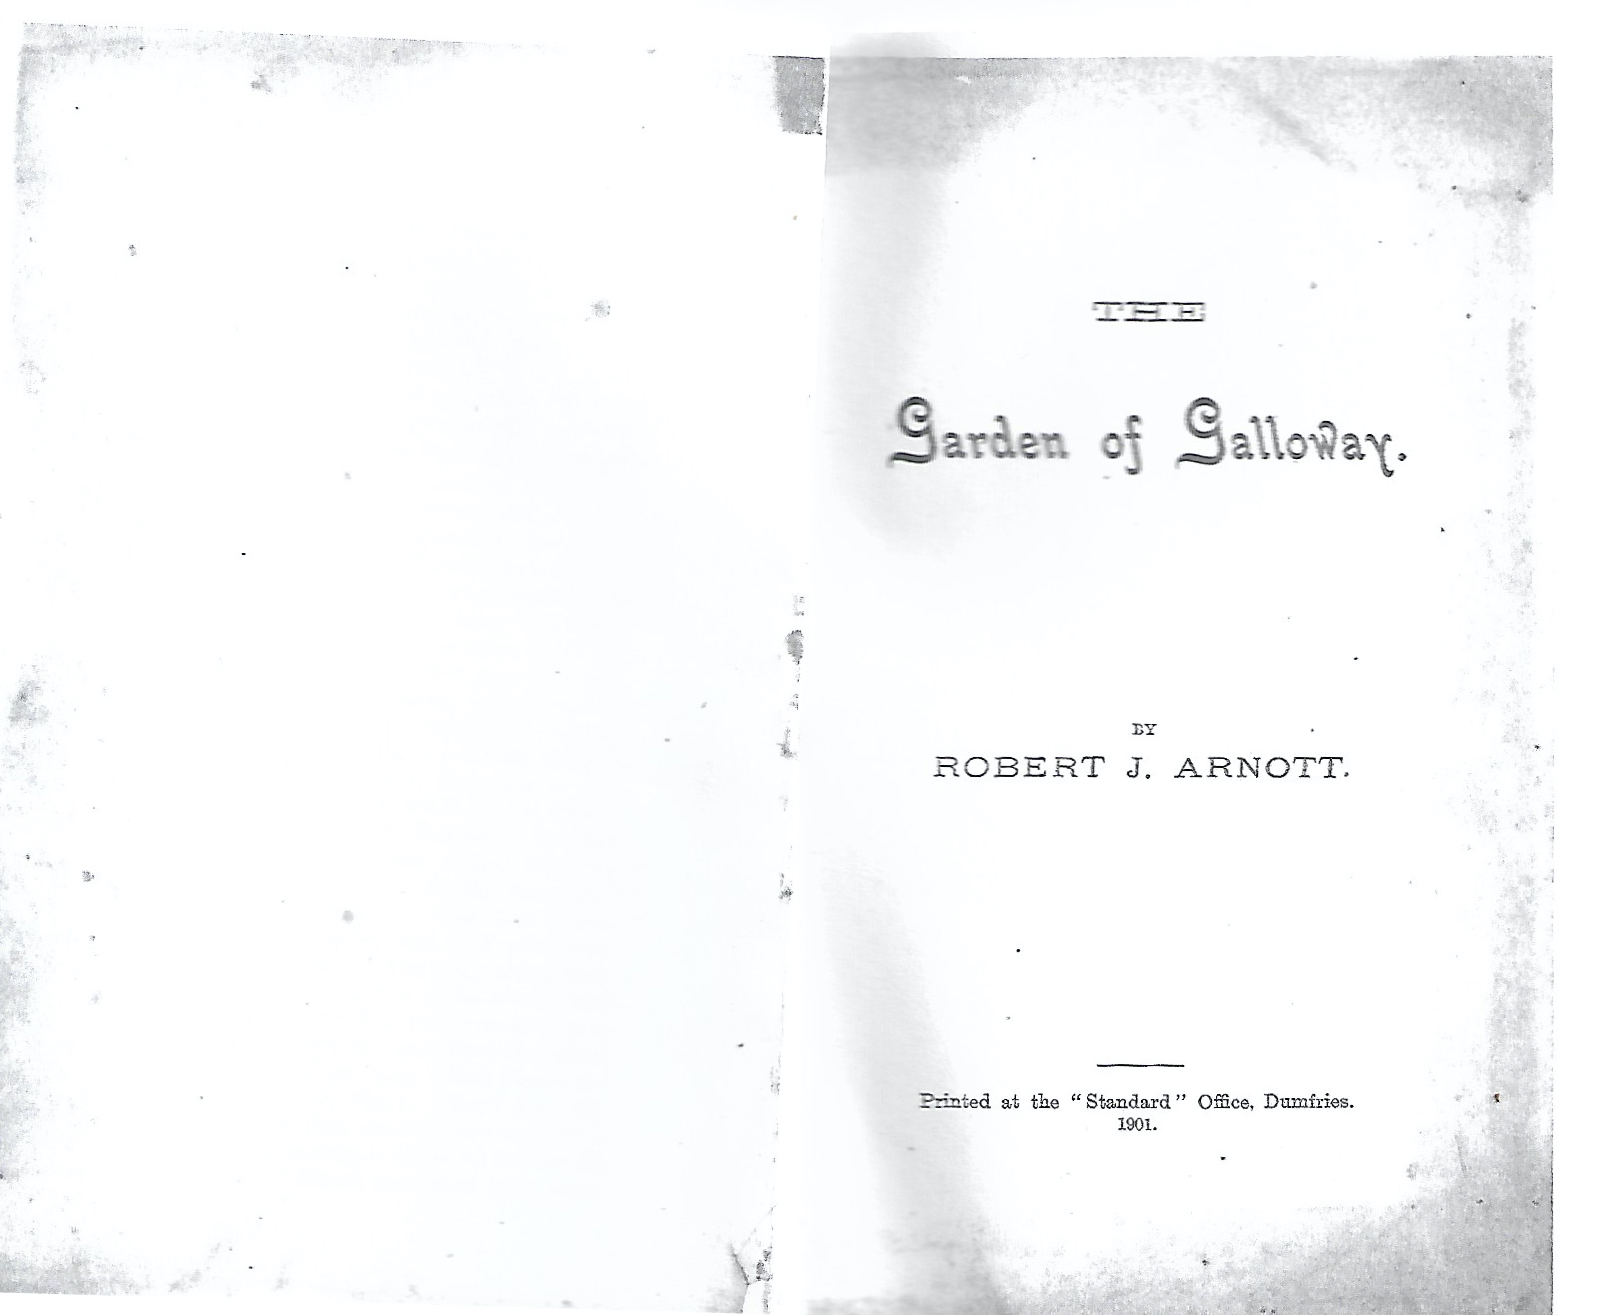 The Garden of Galloway by Robert J Arnott, published in the Dumfries Standard, September 4th, 1901